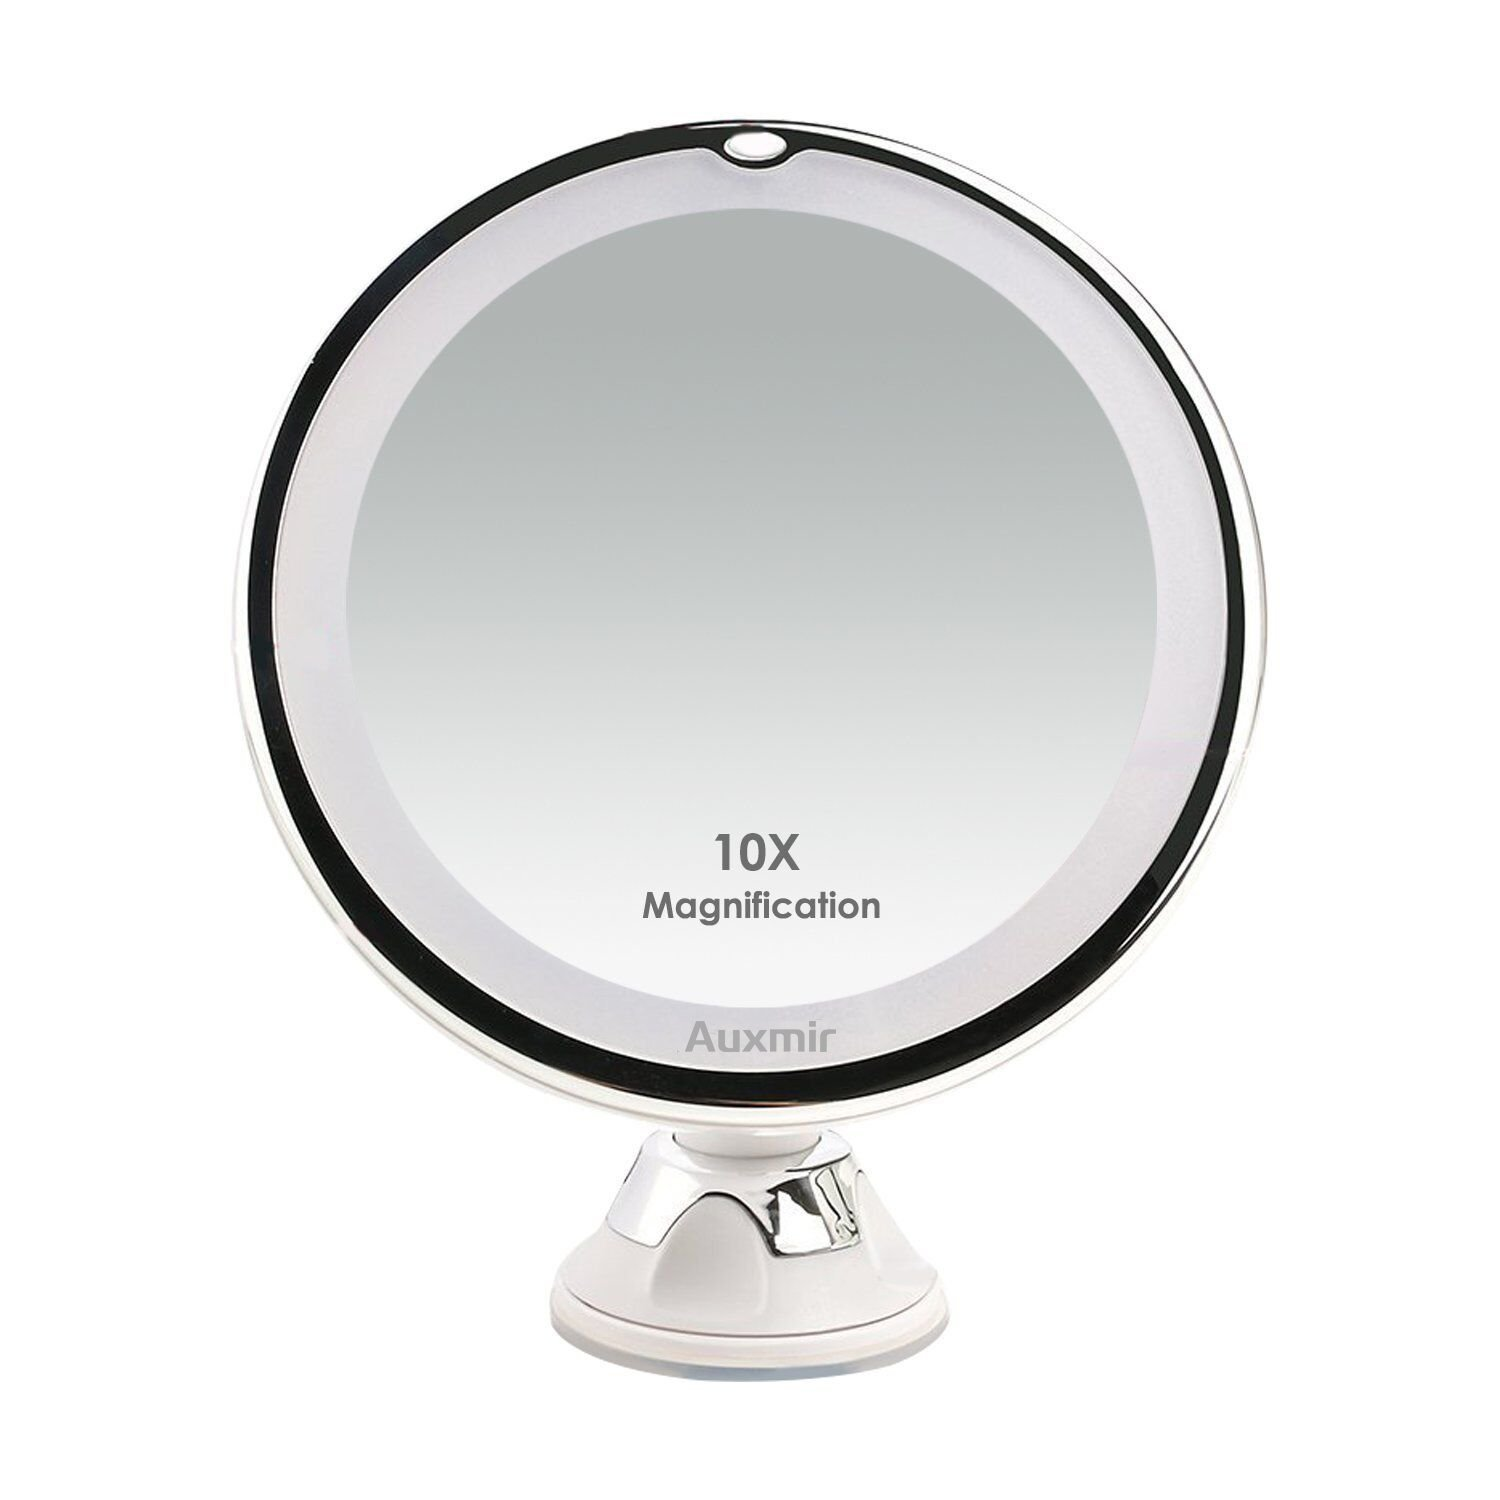 Auxmir Makeup Mirror with 7X Magnifying, LED Lighted Cosmetic Mirror with Suction Base for Makeup, Shaving and Tweezing, Home and Travel, Round BM1410-7X